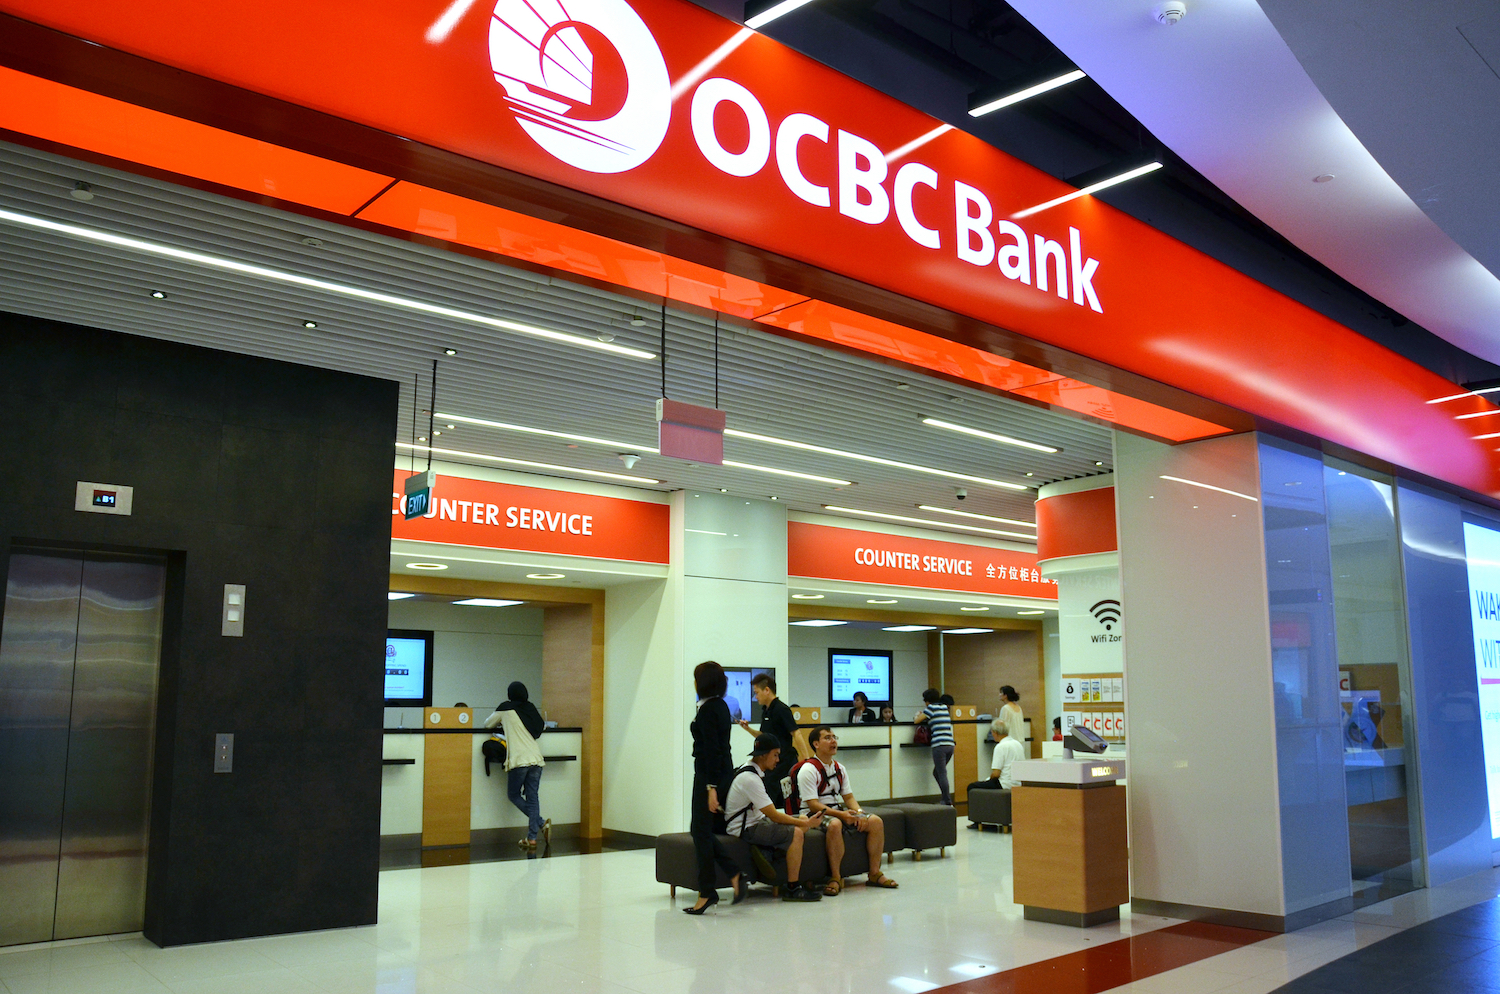 OCBC Trials Blockchain for Interbank Payments  CoinDesk